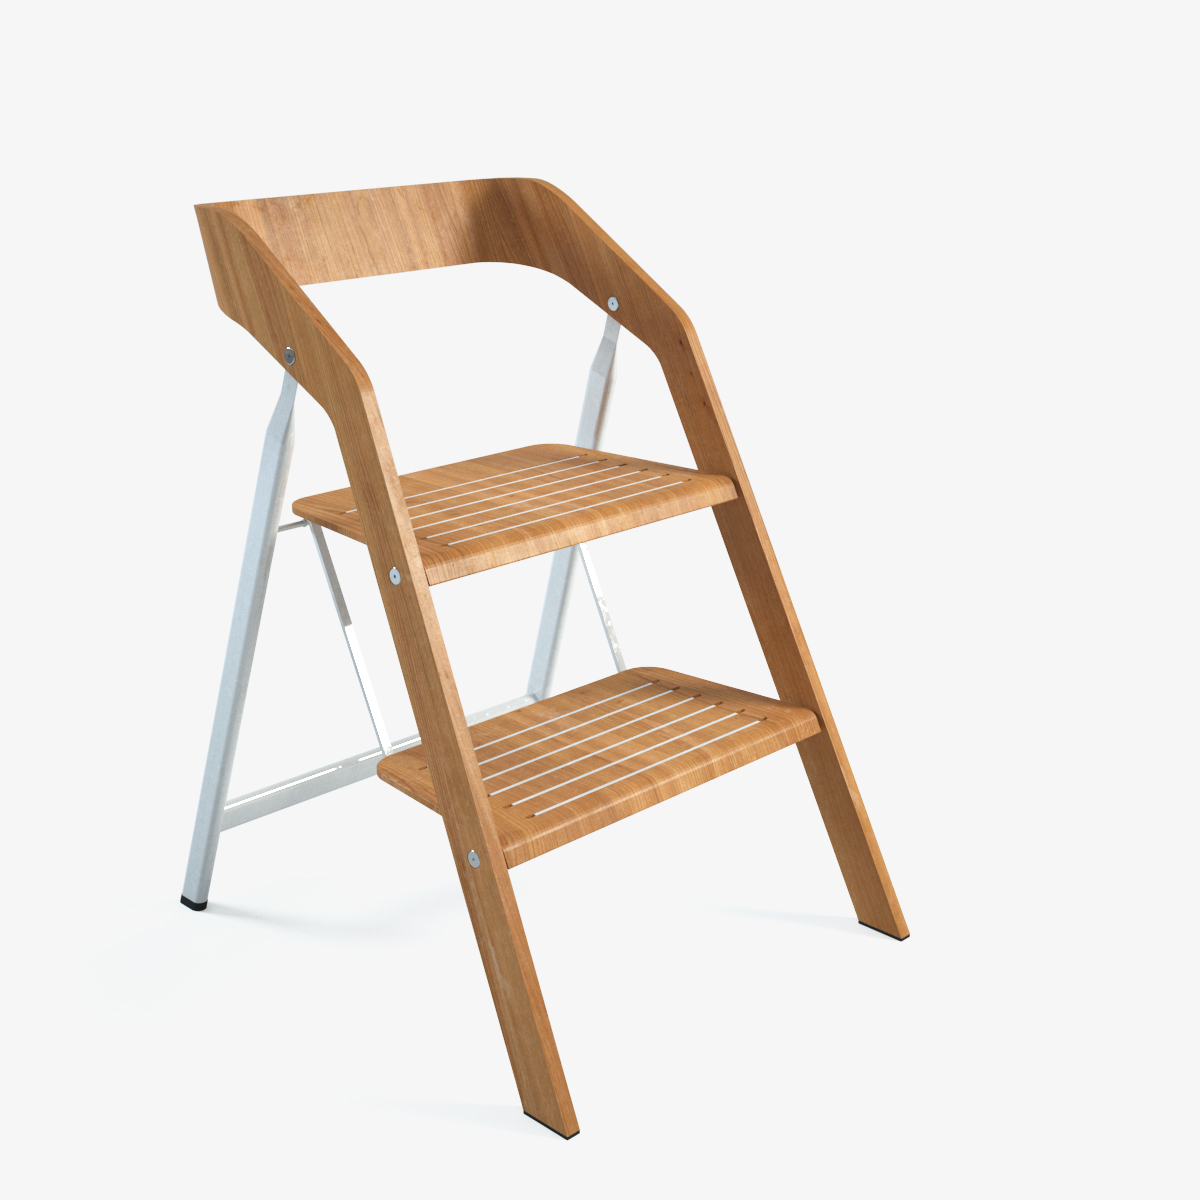 Vintage Usit Stepladder Chair 2 Step Version 3d Model Max